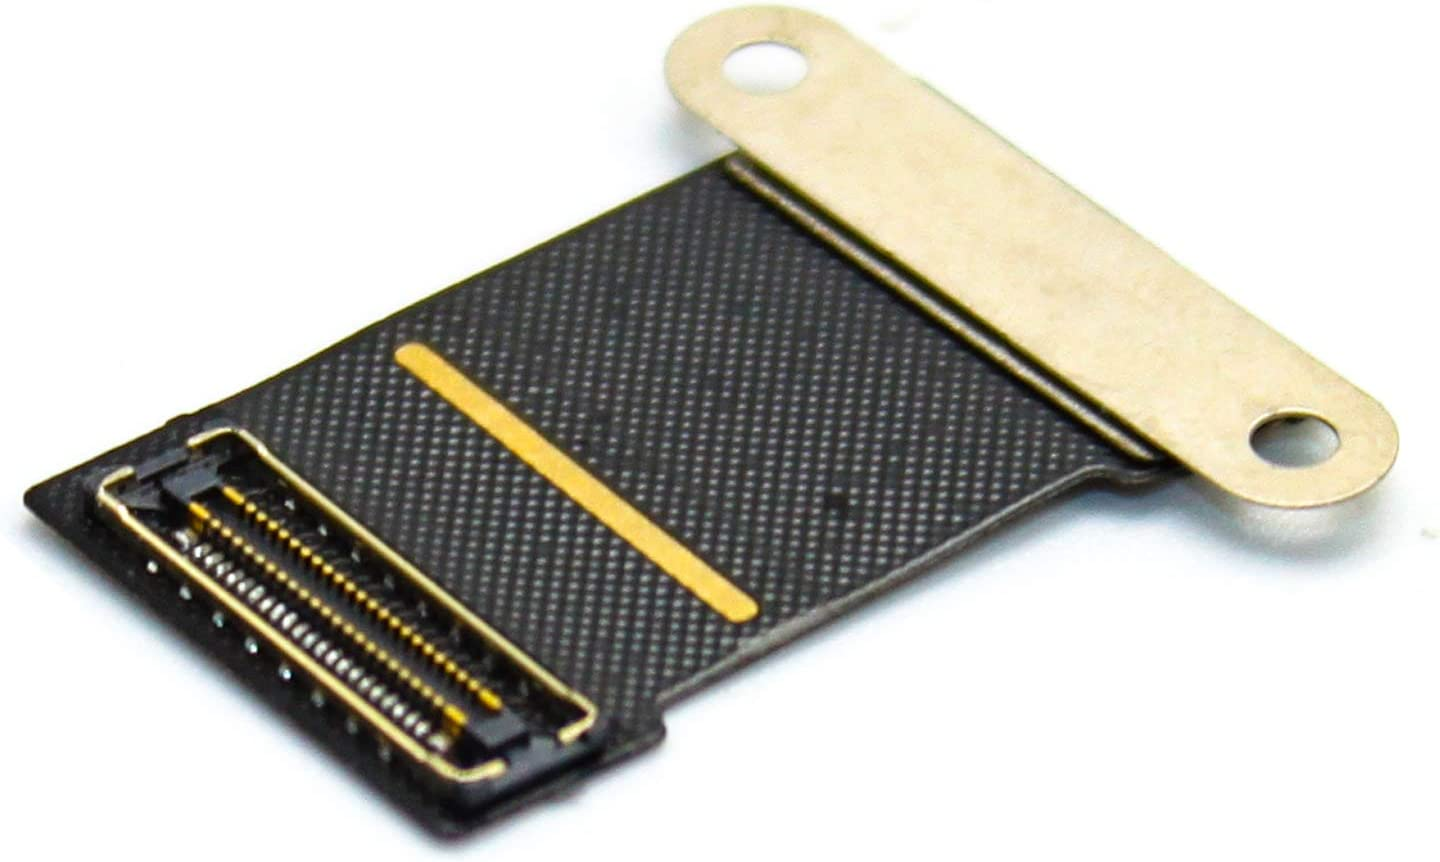 LED LCD Display eDP Embedded DisplayPort Lvds Flex Cable Replacement for MacBook Pro Retina 15